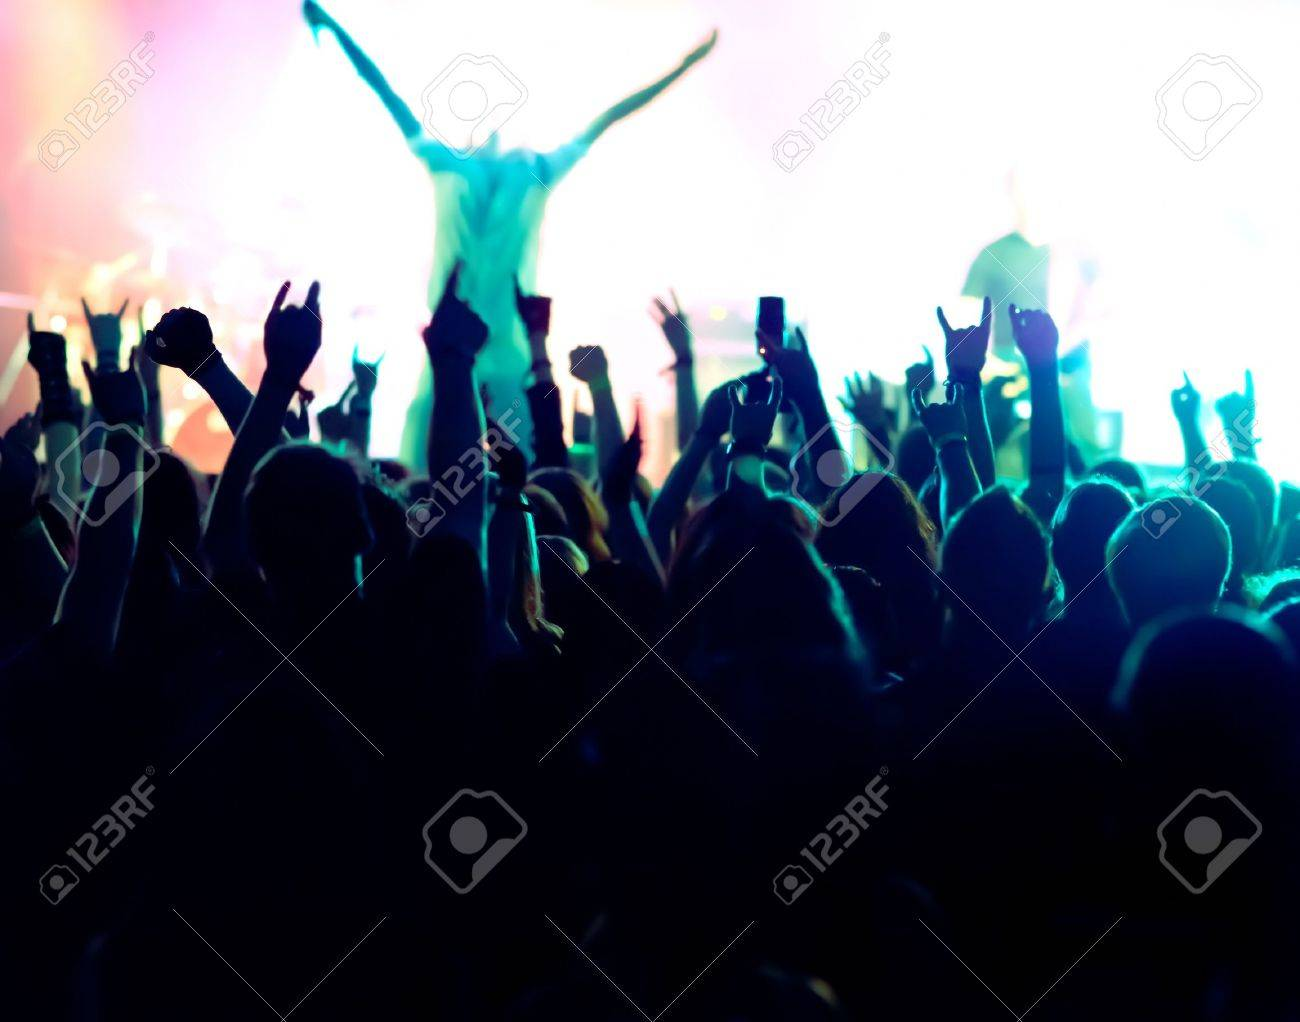 silhouettes of concert crowd in front of bright stage lights Stock Photo - 9954497